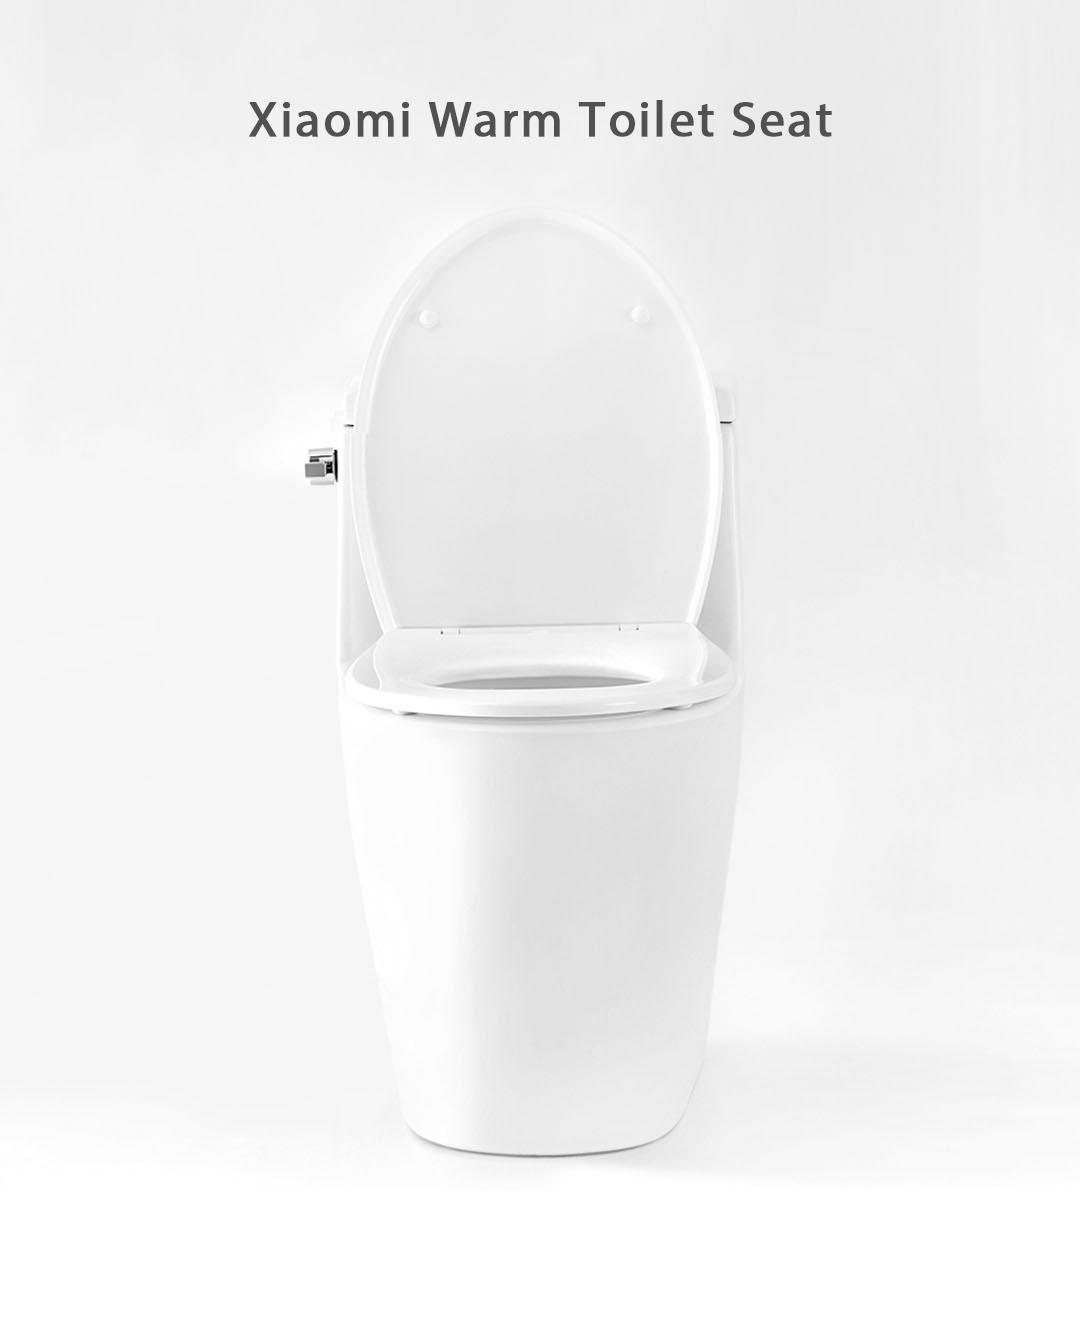 Helpful Xiaomi Mi Small Whale Washing Intelligent Temperature App Smart Toilet Cover Seat With Led Night Light Ipx4 Waterproof Comfortable Feel Home Appliances Home Appliance Parts